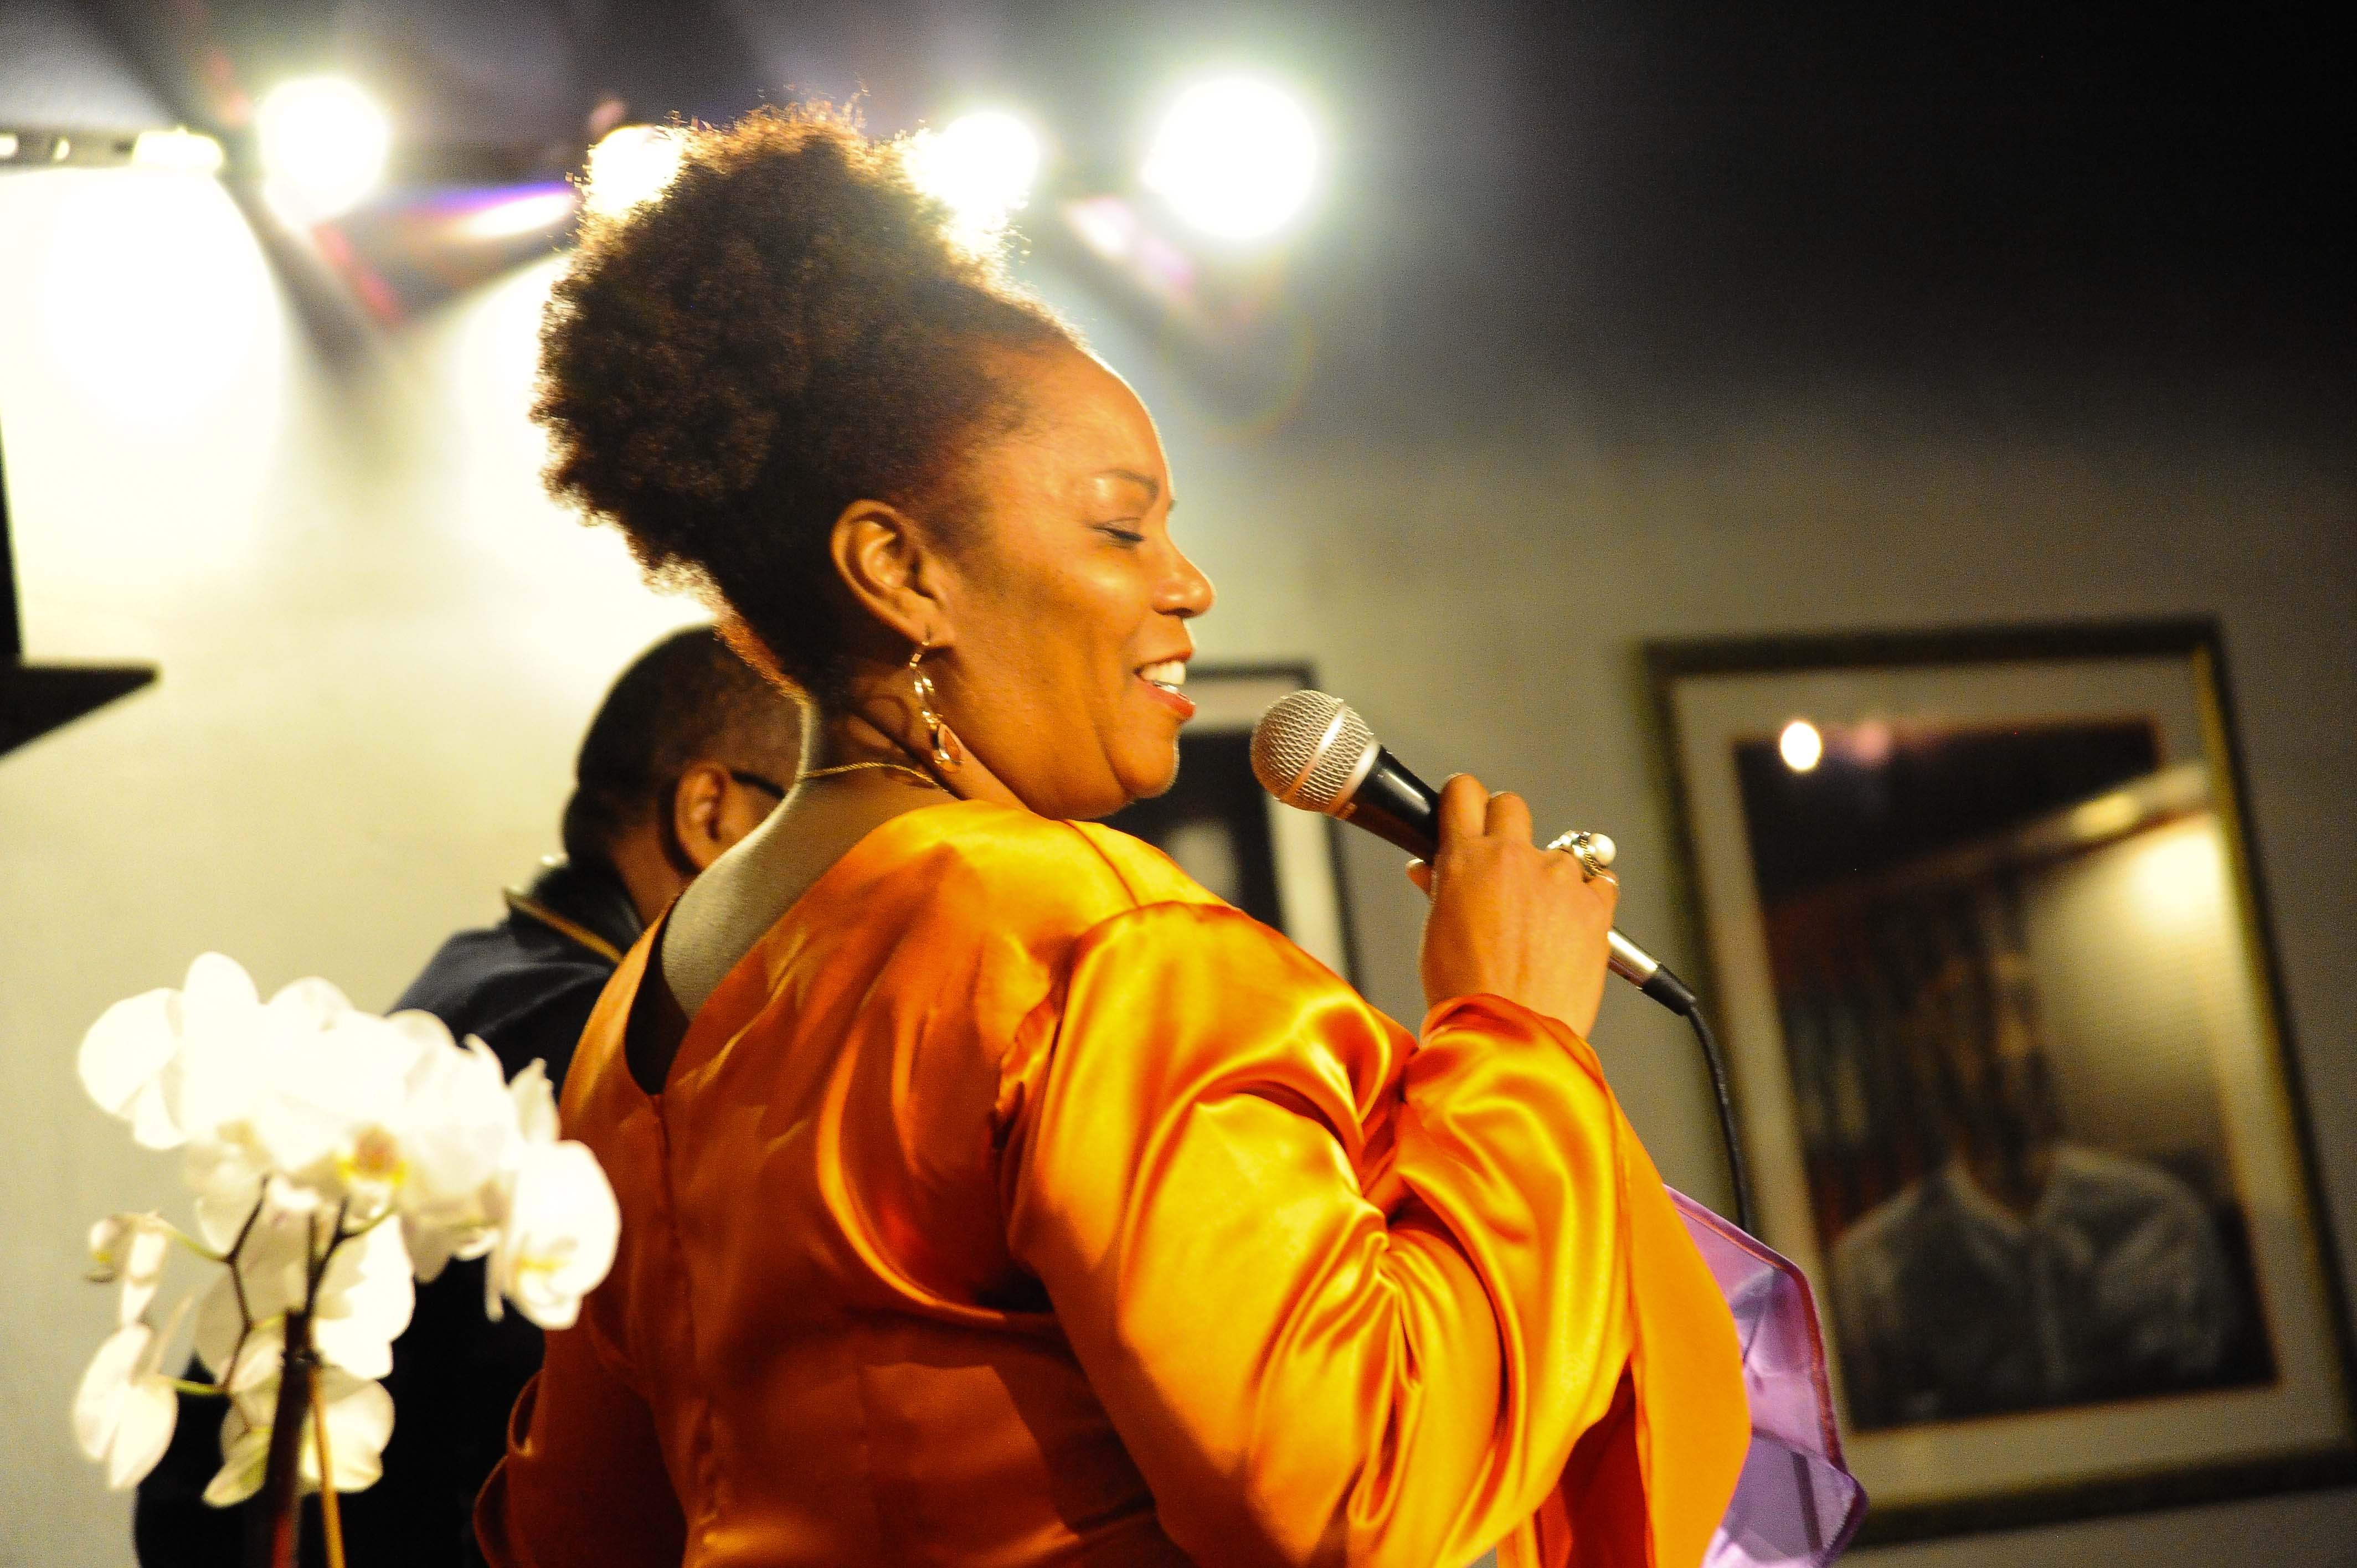 Liz Whitted Dawson - It's Time Concert at The Word Stage